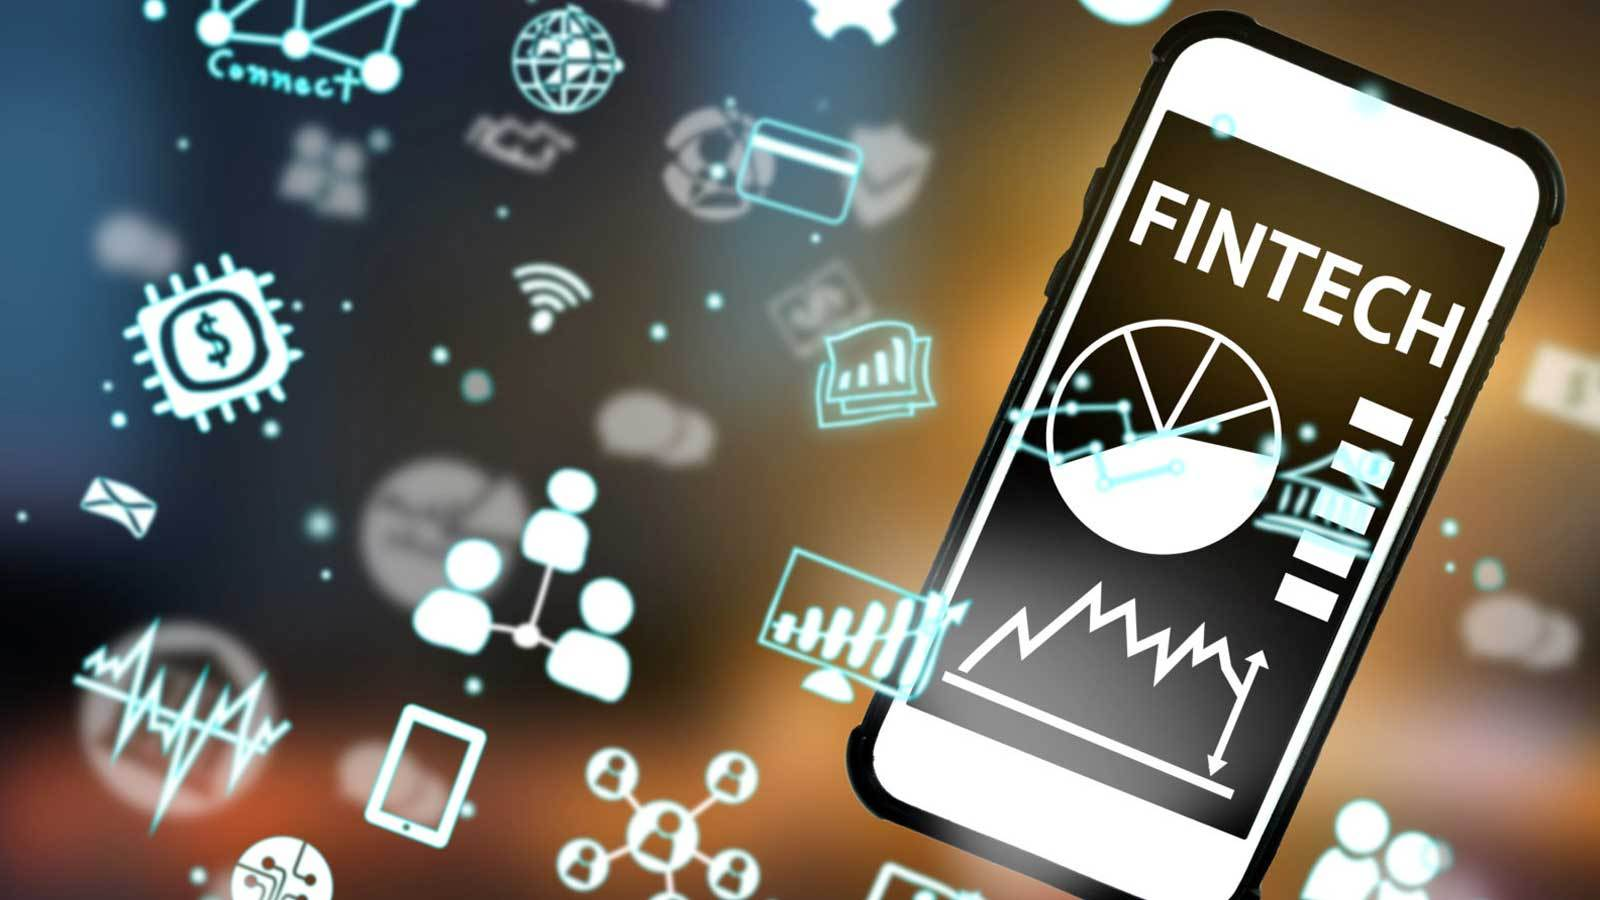 Fin-tech Startups in Indonesia Continues to Grow with More Than 140 Platforms